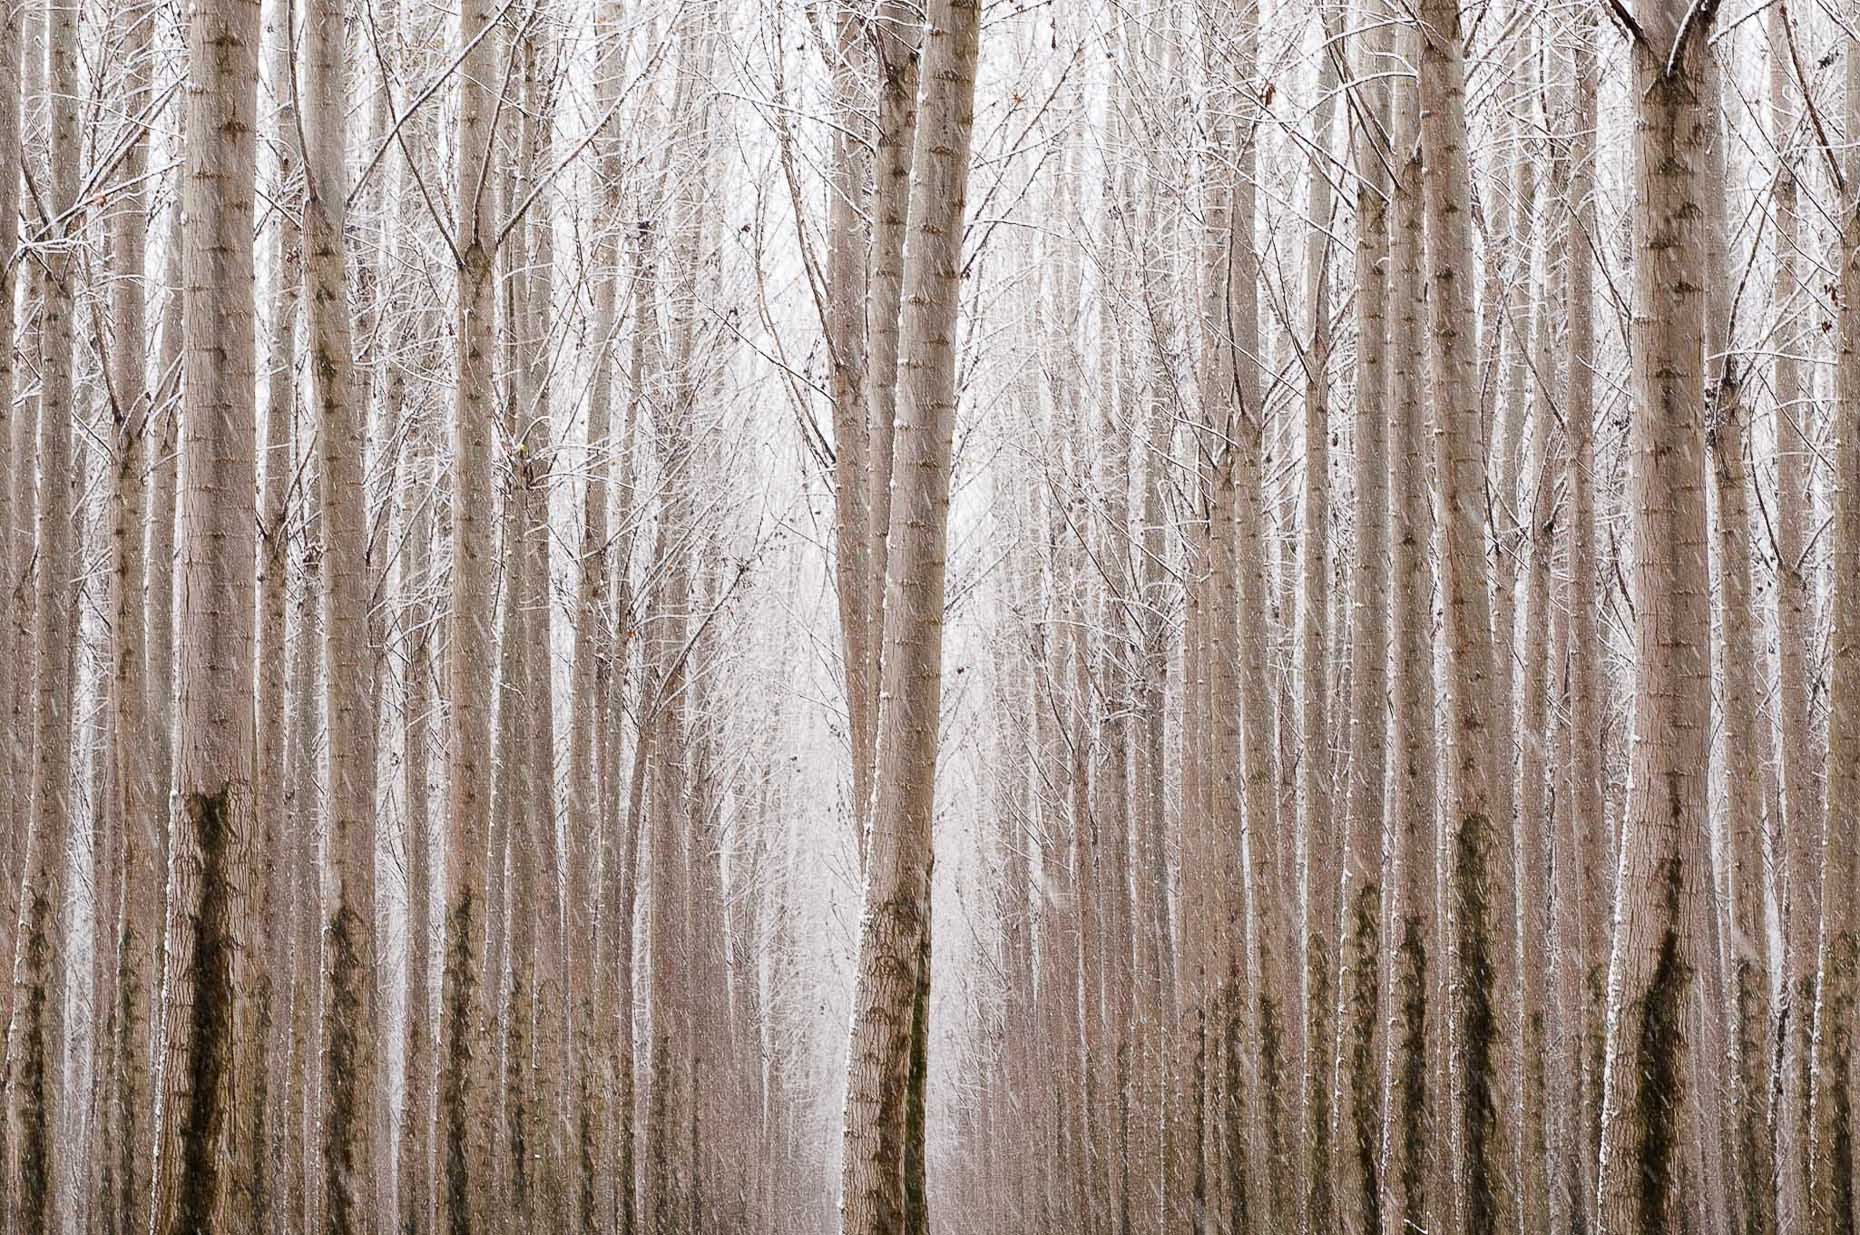 Landscape image of repeating poplar trees  in snow, Oregon.